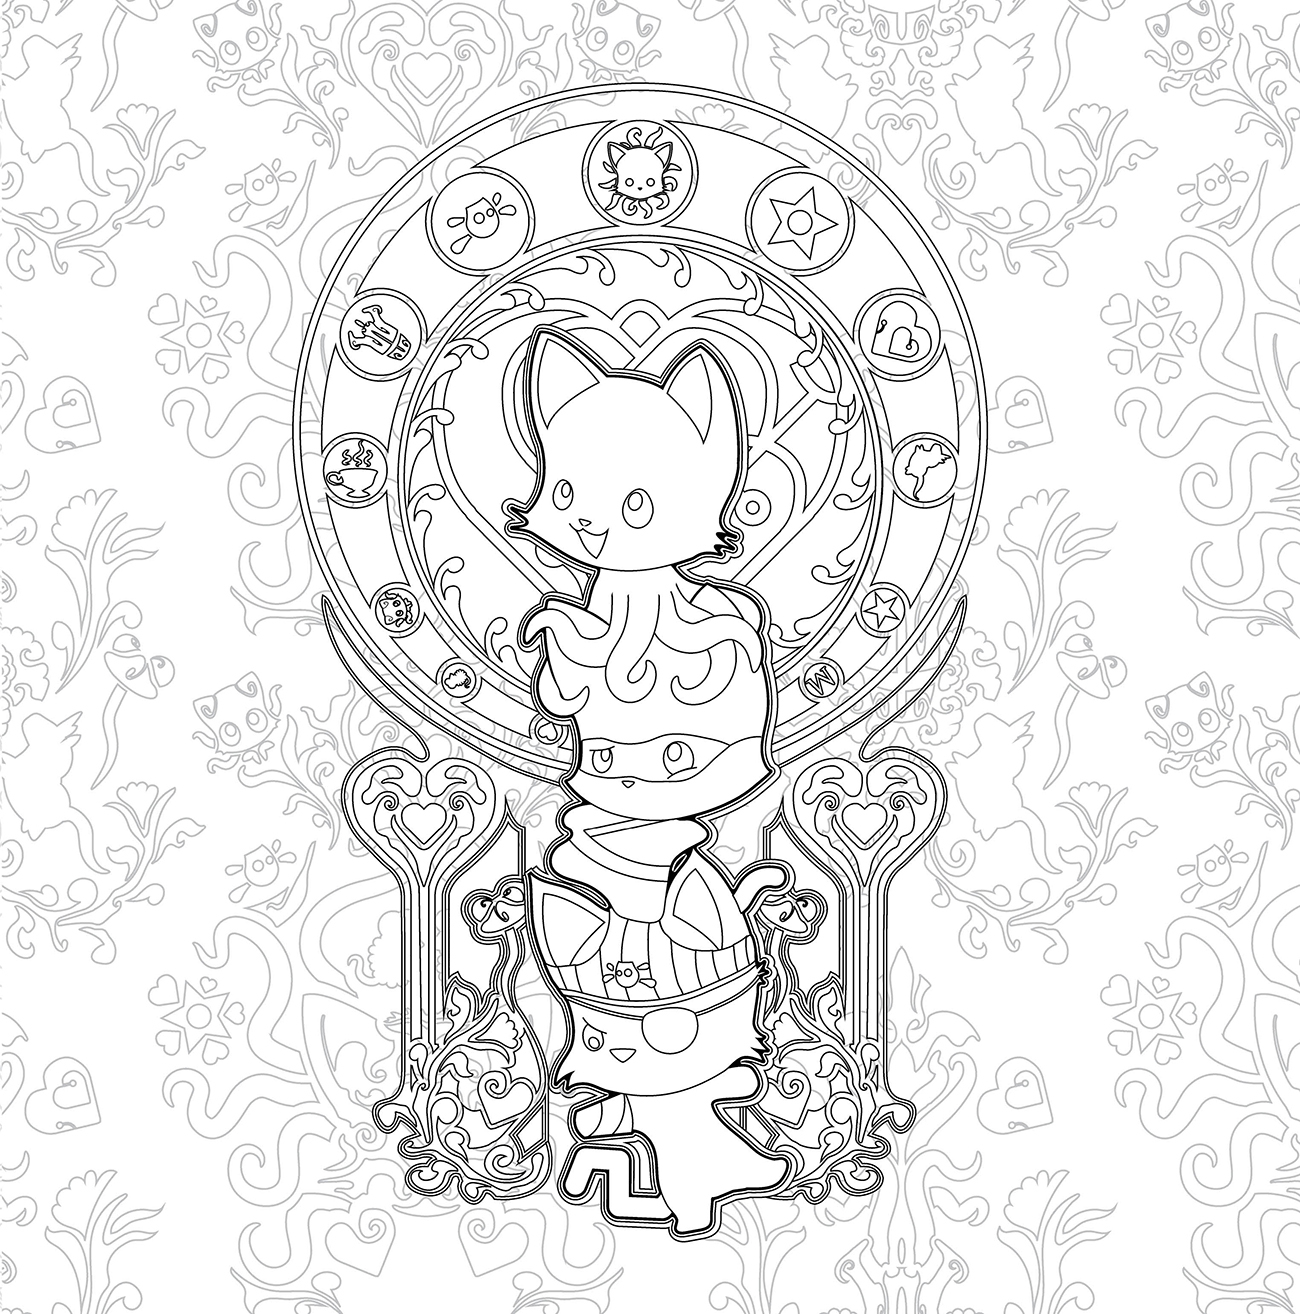 Tentacle Kitty Instagram Coloring Contest [CLOSED